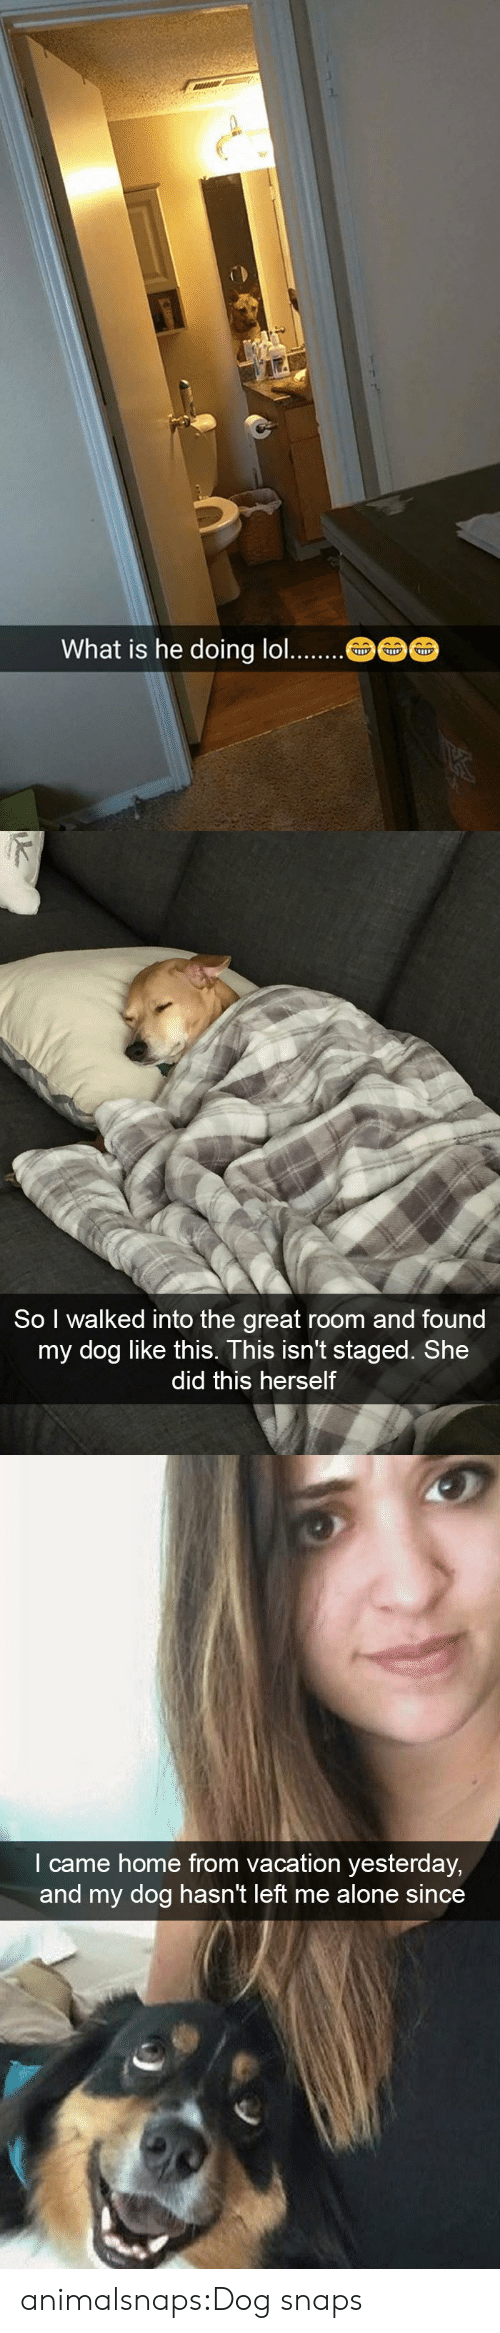 Being Alone, Target, and Tumblr: What is he doing lo..   So I walked into the great room and found  my dog like this. This isn't staged. She  did this herself   l came home from vacation yesterday  and my dog hasn't left me alone since animalsnaps:Dog snaps